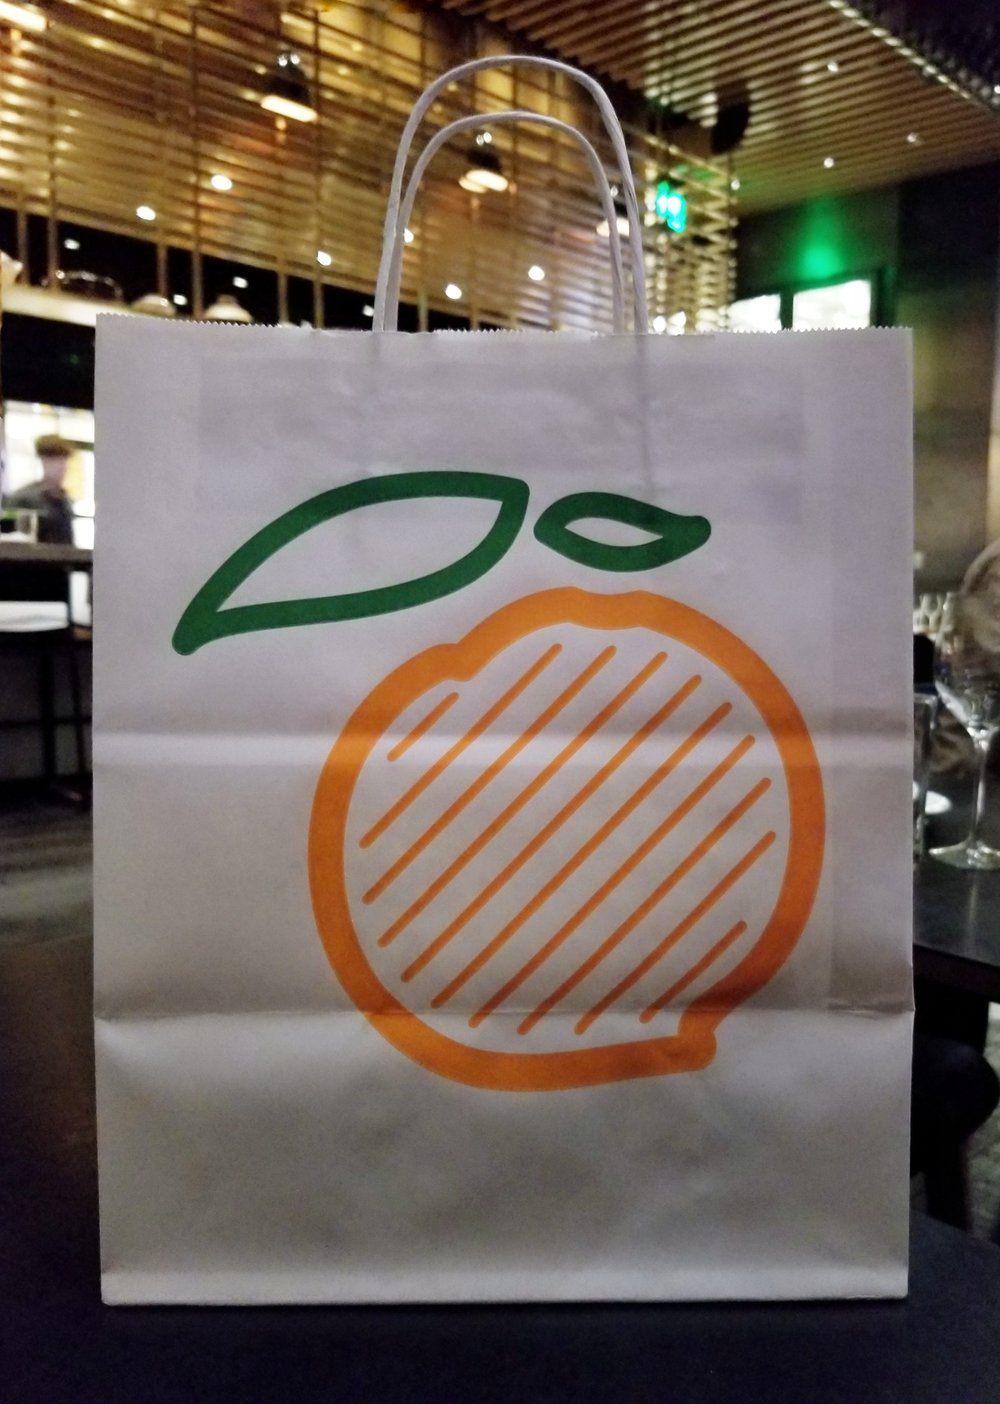 Souvenir  — I didn't get to purchase any restaurant paraphernalia, but I was happy to go home with this cheap & cute to-go bag with Momofuku's logo of a lucky peach.